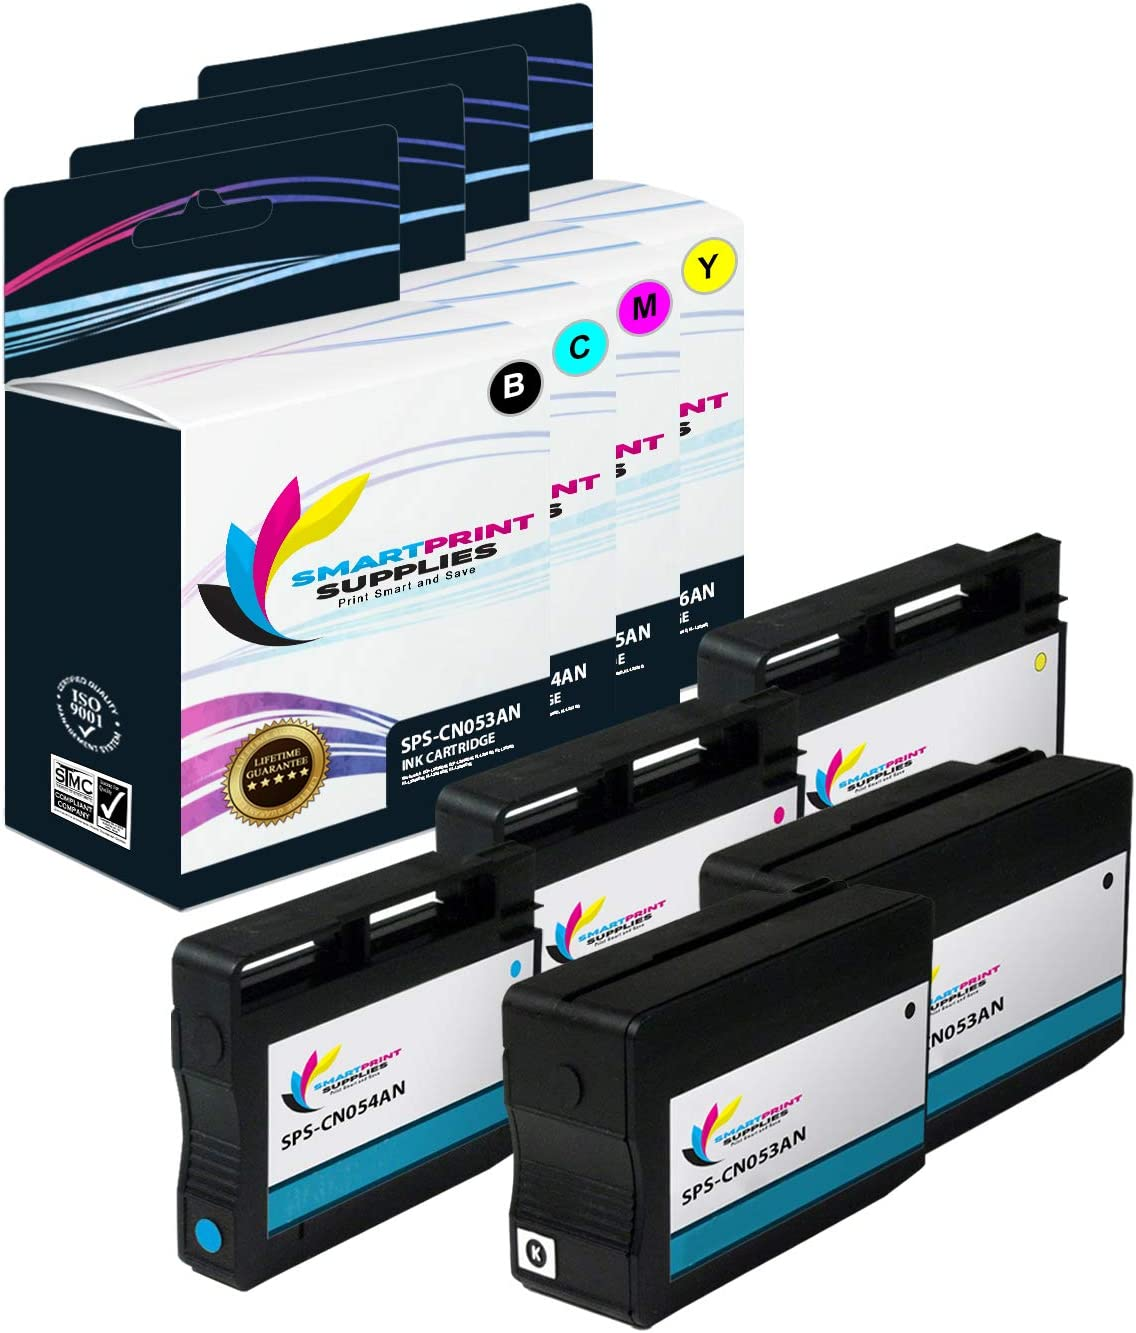 Black, Cyan, Magenta, Yellow ePrinter 7610 7612 Printers Smart Print Supplies Compatible 932XL 933XL High Yield Ink Cartridge Replacement for HP OfficeJet 6100 7110 - 5 Pack